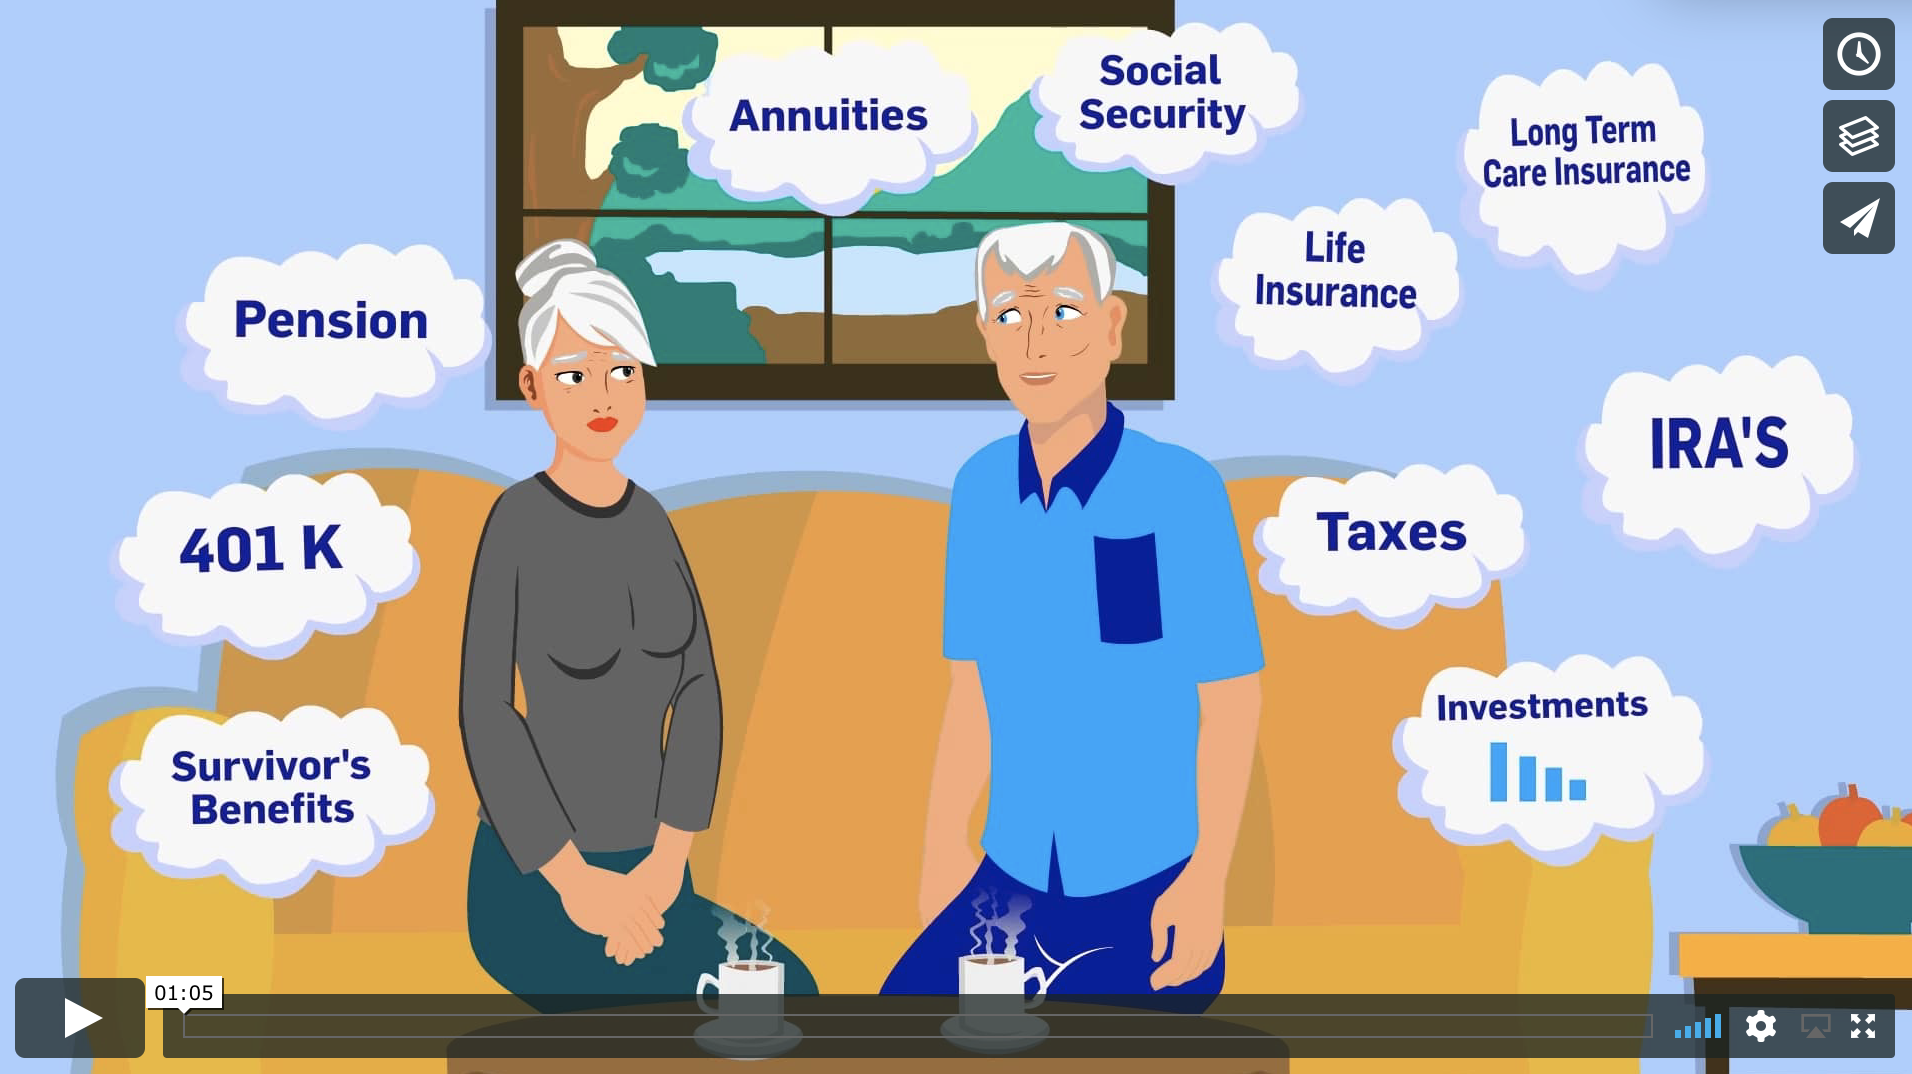 Watch this quick 1-minute video and learn about the integrative planning process that Evan Belaga, our expert certified financial & retirement planner covers.